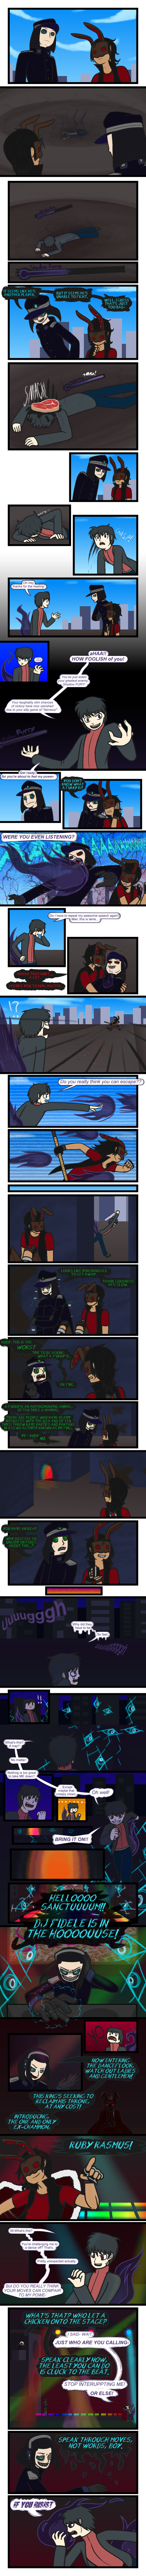 -Sanctum OCT- Round 2 vs. Shadow Fury: Page 2 by sarahthecat